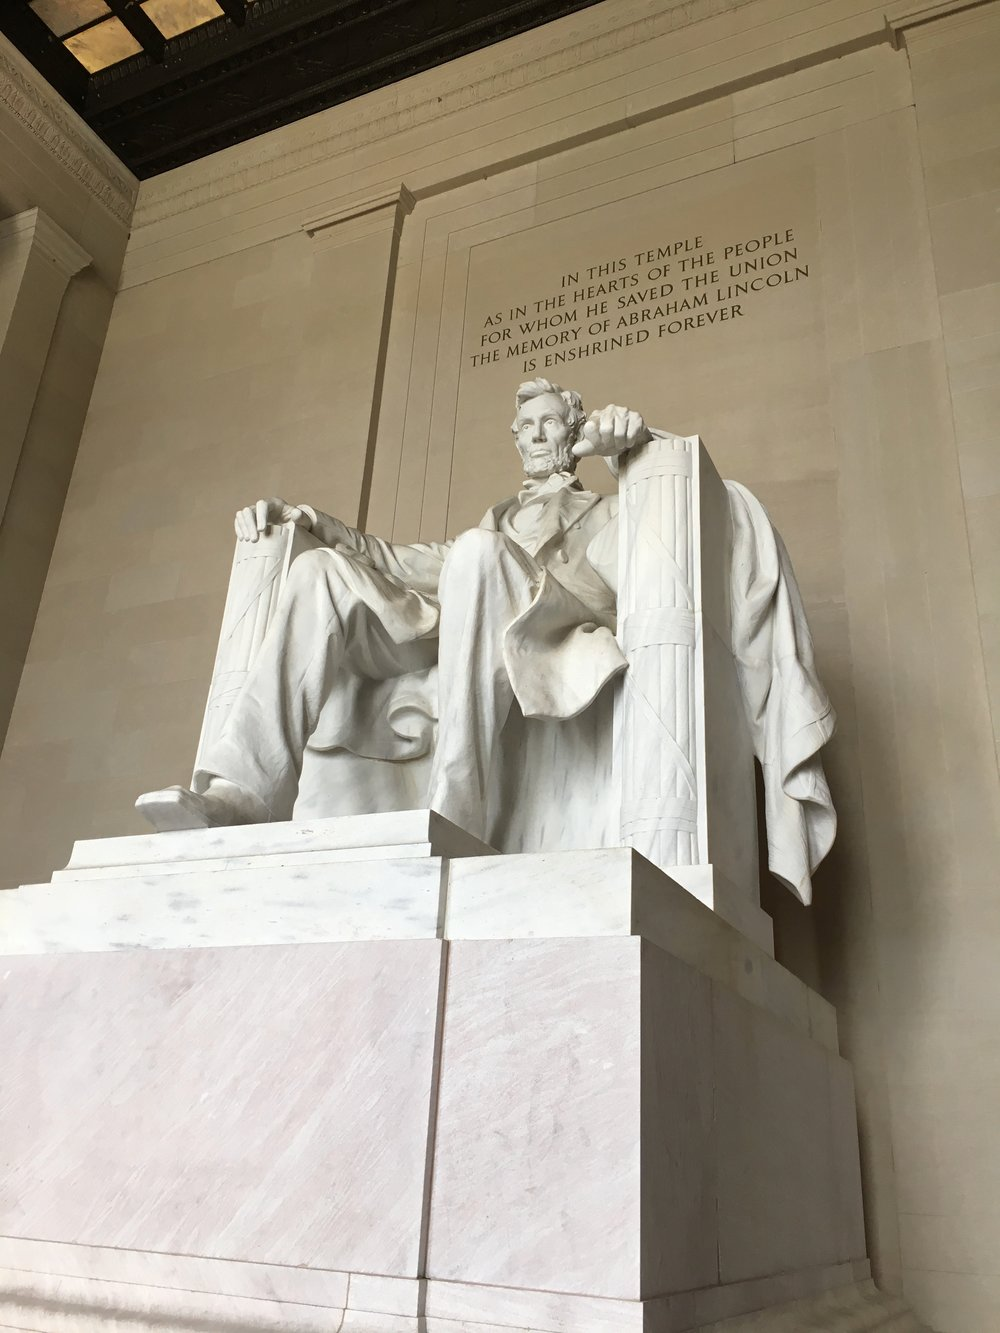 Inside the Lincoln Memorial, photo by Derek Wright.